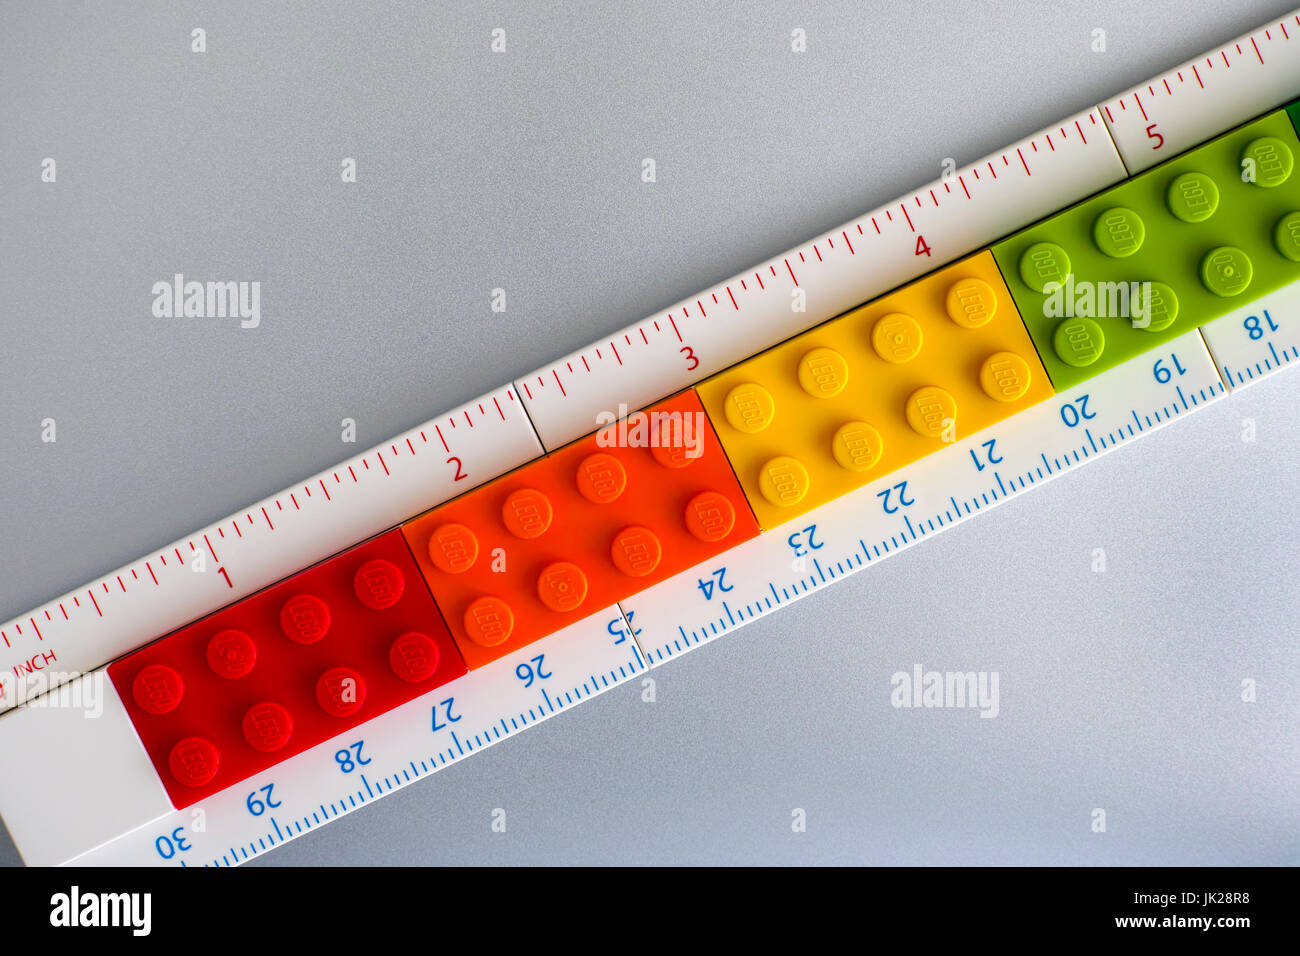 Tambov russian federation may 20 2017 lego ruler with inches tambov russian federation may 20 2017 lego ruler with inches and centimeters made buycottarizona